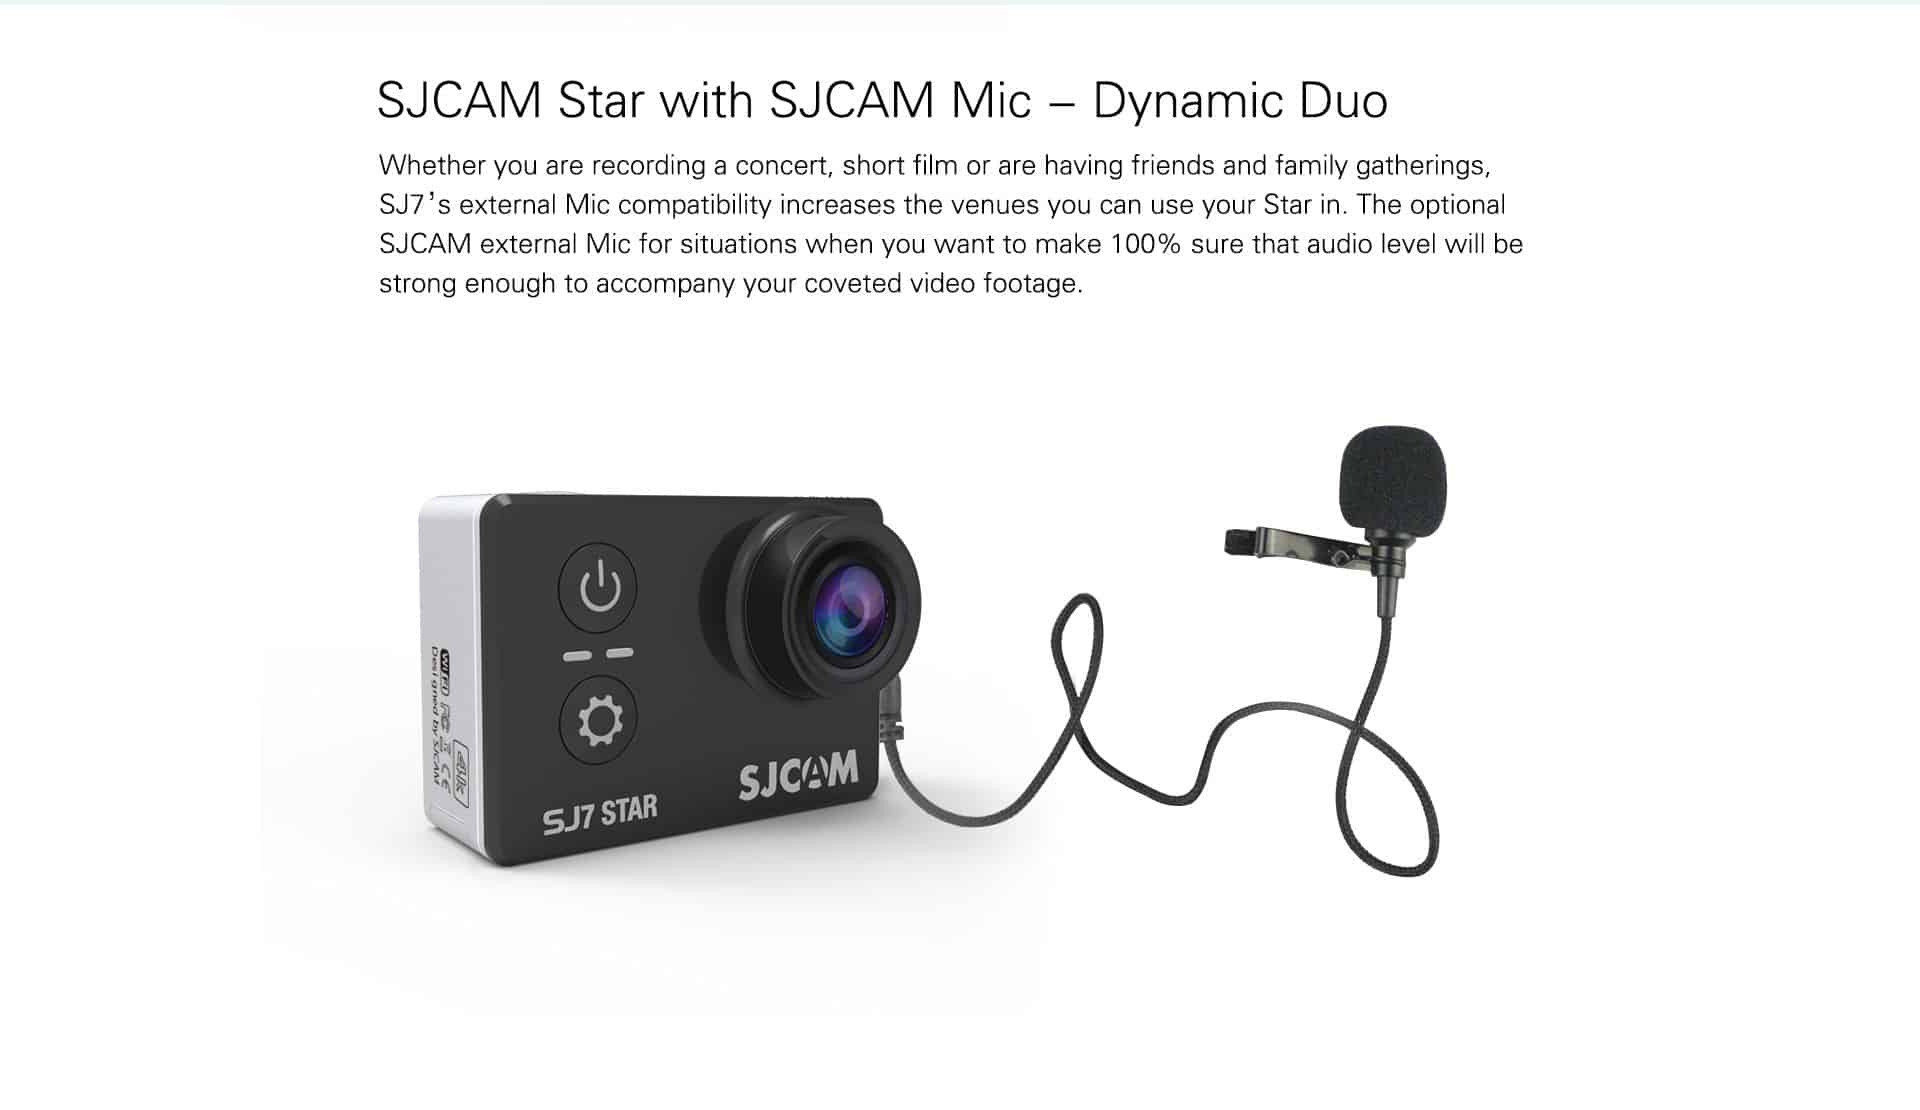 amazon SJCam SJ7 Star reviews SJCam SJ7 Star on amazon newest SJCam SJ7 Star prices of SJCam SJ7 Star SJCam SJ7 Star deals best deals on SJCam SJ7 Star buying a SJCam SJ7 Star lastest SJCam SJ7 Star what is a SJCam SJ7 Star SJCam SJ7 Star at amazon where to buy SJCam SJ7 Star where can i you get a SJCam SJ7 Star online purchase SJCam SJ7 Star SJCam SJ7 Star sale off SJCam SJ7 Star discount cheapest SJCam SJ7 Star SJCam SJ7 Star for sale SJCam SJ7 Star products SJCam SJ7 Star tutorial SJCam SJ7 Star specification SJCam SJ7 Star features SJCam SJ7 Star test SJCam SJ7 Star series SJCam SJ7 Star service manual SJCam SJ7 Star instructions SJCam SJ7 Star accessories sjcam sj7 star action camera sjcam sj7 star app sjcam sj7 star action cam review sjcam sj7 star accessories sjcam sj7 star australia sjcam sj7 star battery sjcam sj7 star battery life sjcam sj7 star buy sjcam sj7 star banggood sjcam sj7 star black sjcam sj7 star best price sjcam sj7 star black friday sjcam sj7 star canada sjcam sj7 star coupon sjcam sj7 star dubai sjcam sj7 star external mic sjcam sj7 star ebay sjcam sj7 star firmware sjcam sj7 star fov sjcam sj7 star gyro sjcam sj7 star gearbest sjcam sj7 star india sjcam sj7 star ireland sjcam sj7 star lazada sjcam sj7 star latest firmware sjcam sj7 star low light sjcam sj7 star malaysia sjcam sj7 star manual sjcam sj7 star memory card sjcam sj7 star nz sjcam sj7 star native 4k action camera sjcam sj7 star nepal sjcam sj7 star olx sjcam sj7 star price sjcam sj7 star price in india sjcam sj7 star pantip sjcam sj7 star price philippines sjcam sj7 star price in nepal sjcam sj7 star photos sjcam sj7 star price in pakistan sjcam sj7 star philippines sjcam sj7 star sjcam sj7 star wifi 4k sjcam sj7 star singapore sjcam sj7 star sd card sjcam sj7 star south africa sjcam sj7 star specification sjcam sj7 star slow motion sjcam sj7 star time lapse sjcam sj7 star teszt sjcam sj7 star uk sjcam sj7 star update sjcam sj7 star underwater sjcam sj7 star user manual sjcam sj7 star vs yi 4k+ sjcam sj7 star vs gopro 5 sjcam sj7 star vs gopro hero 6 sjcam sj7 star vs thieye t5e sjcam sj7 star vs xiaomi yi 4k sjcam sj7 star vs gopro sjcam sj7 star vs sj6 legend sjcam sj7 star vs gopro hero 5 sjcam sj7 star vs thieye sjcam sj7 star 4k wifi action camera imx117 cmos 2.0 inch lcd sport dv ambarella a12s75 sjcam sj7 star 4k 12mp 2 touch screen metal body gyro waterproof sports action camera black sjcam sj7 star 4k review